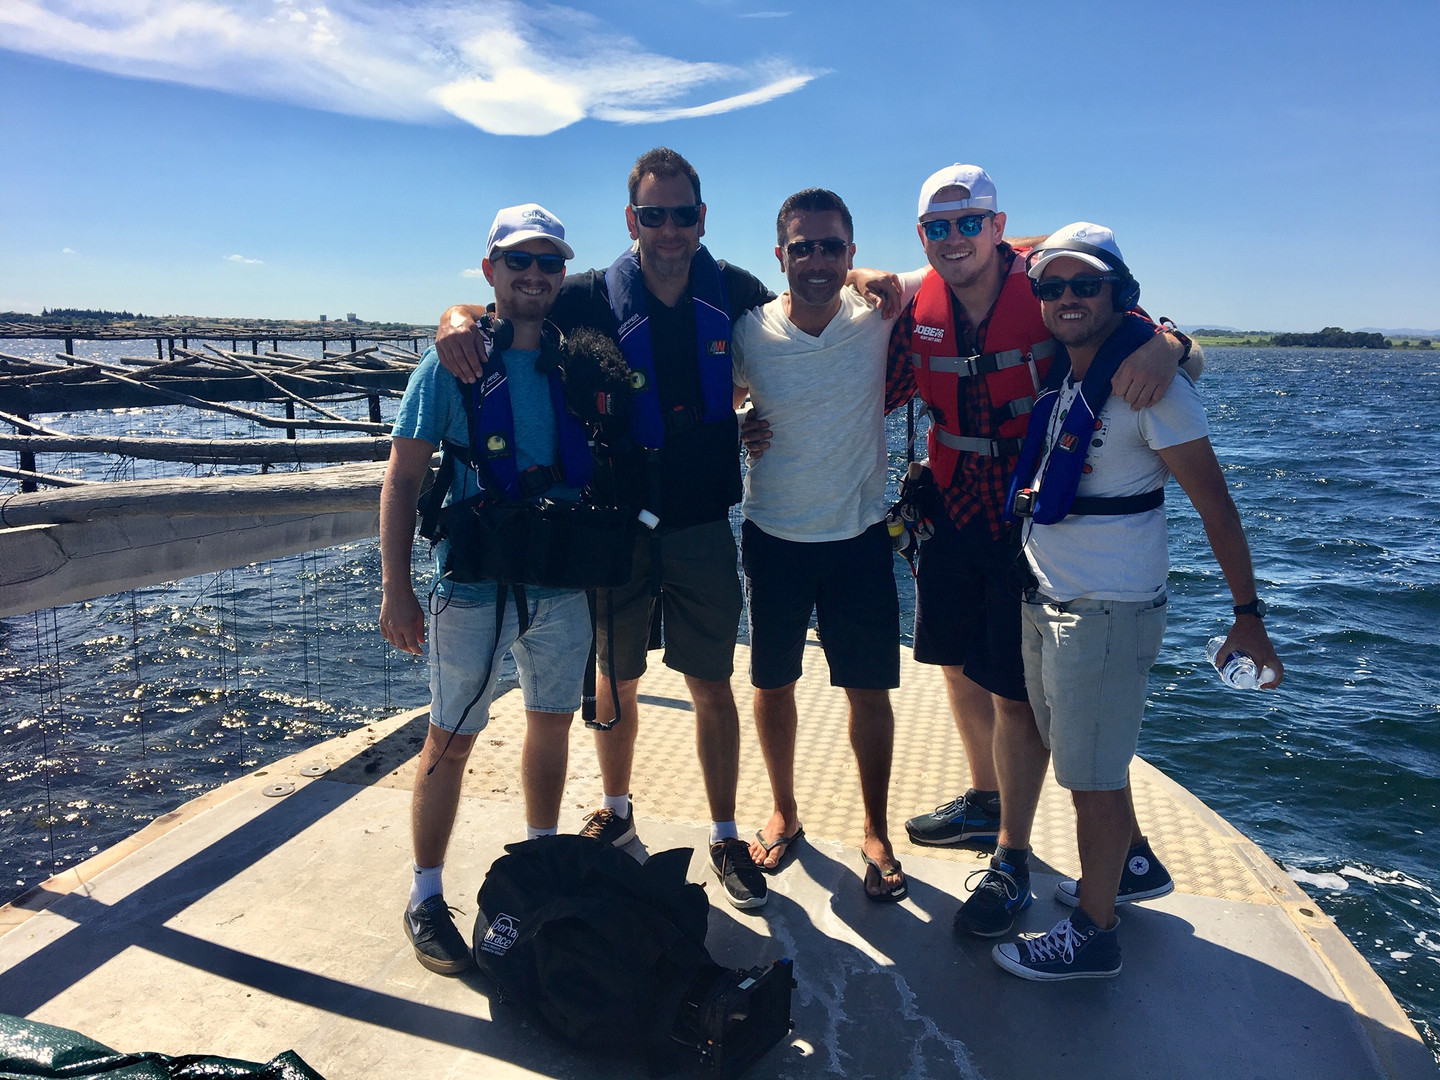 Oyster catching with Gino D'Acampo